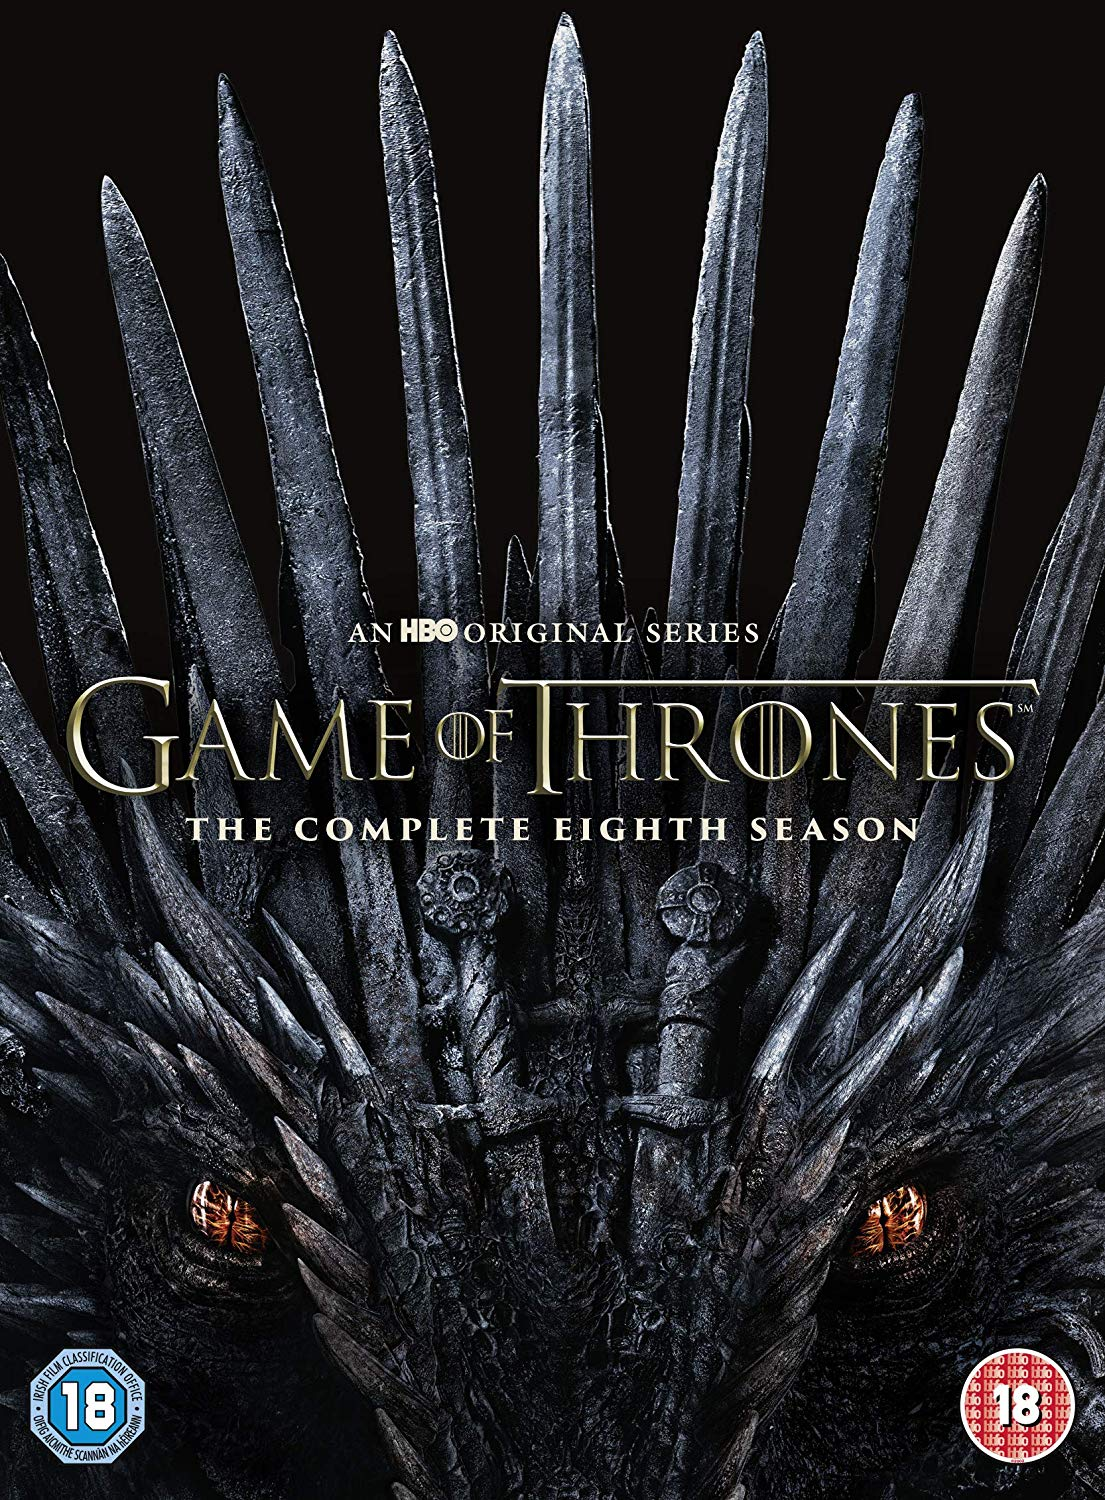 Game of Thrones: The Complete Eighth Season - David Benioff [DVD]  OUT 29.11.19 PRE-ORDER NOW